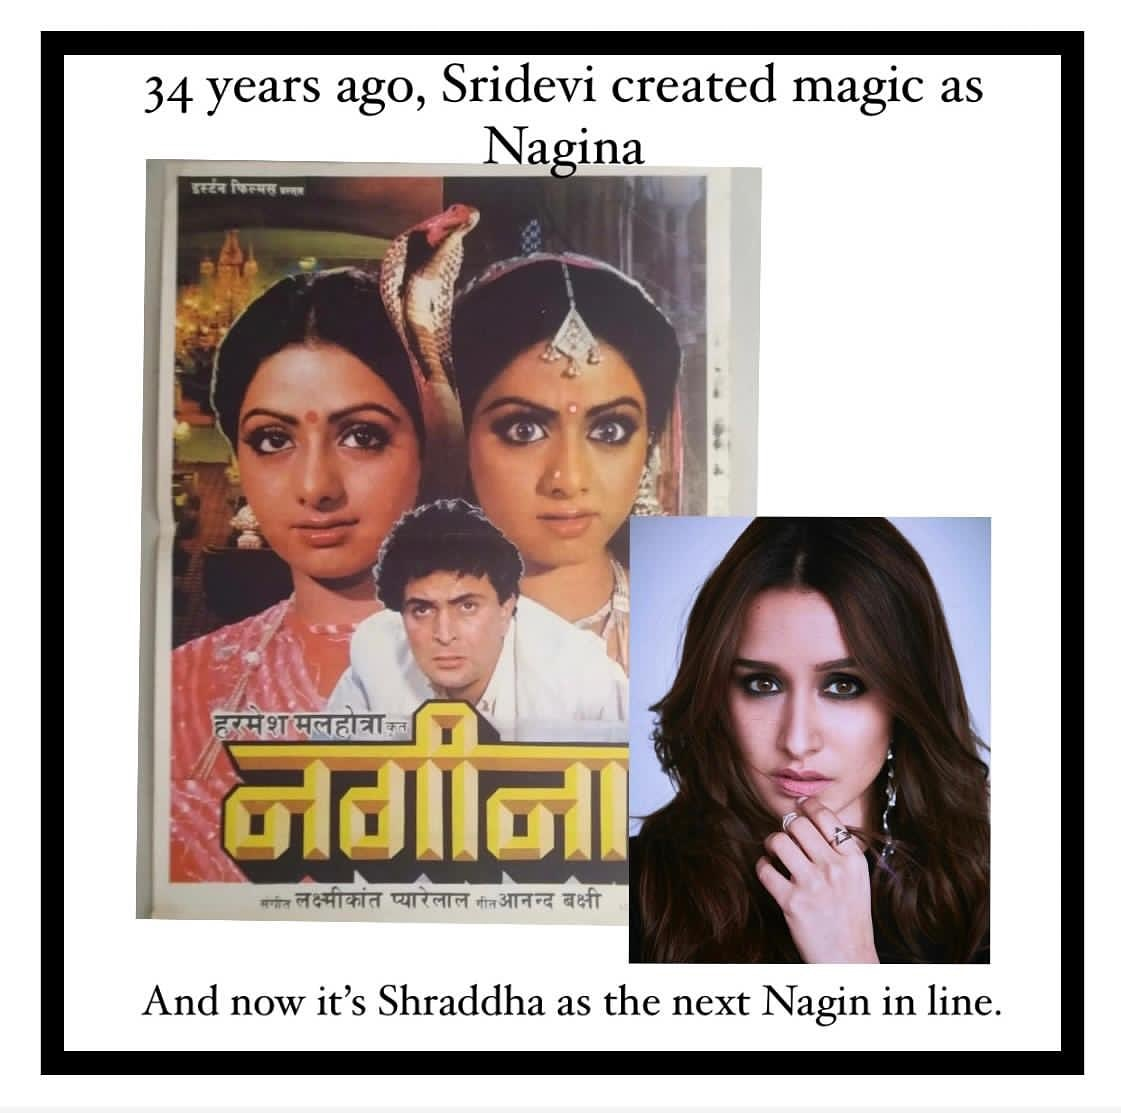 Sridevi's Nagina released on November 28, 1986 and she's been the most iconic #Nagin ever since. Can't wait for #Shraddhakapoor to recreate the magic as the 'millennial' Nagin. All the best to the team!! @furiavishal  @nikhil_dwivedi @saffronbrdmedia  #shraddhaasnagin